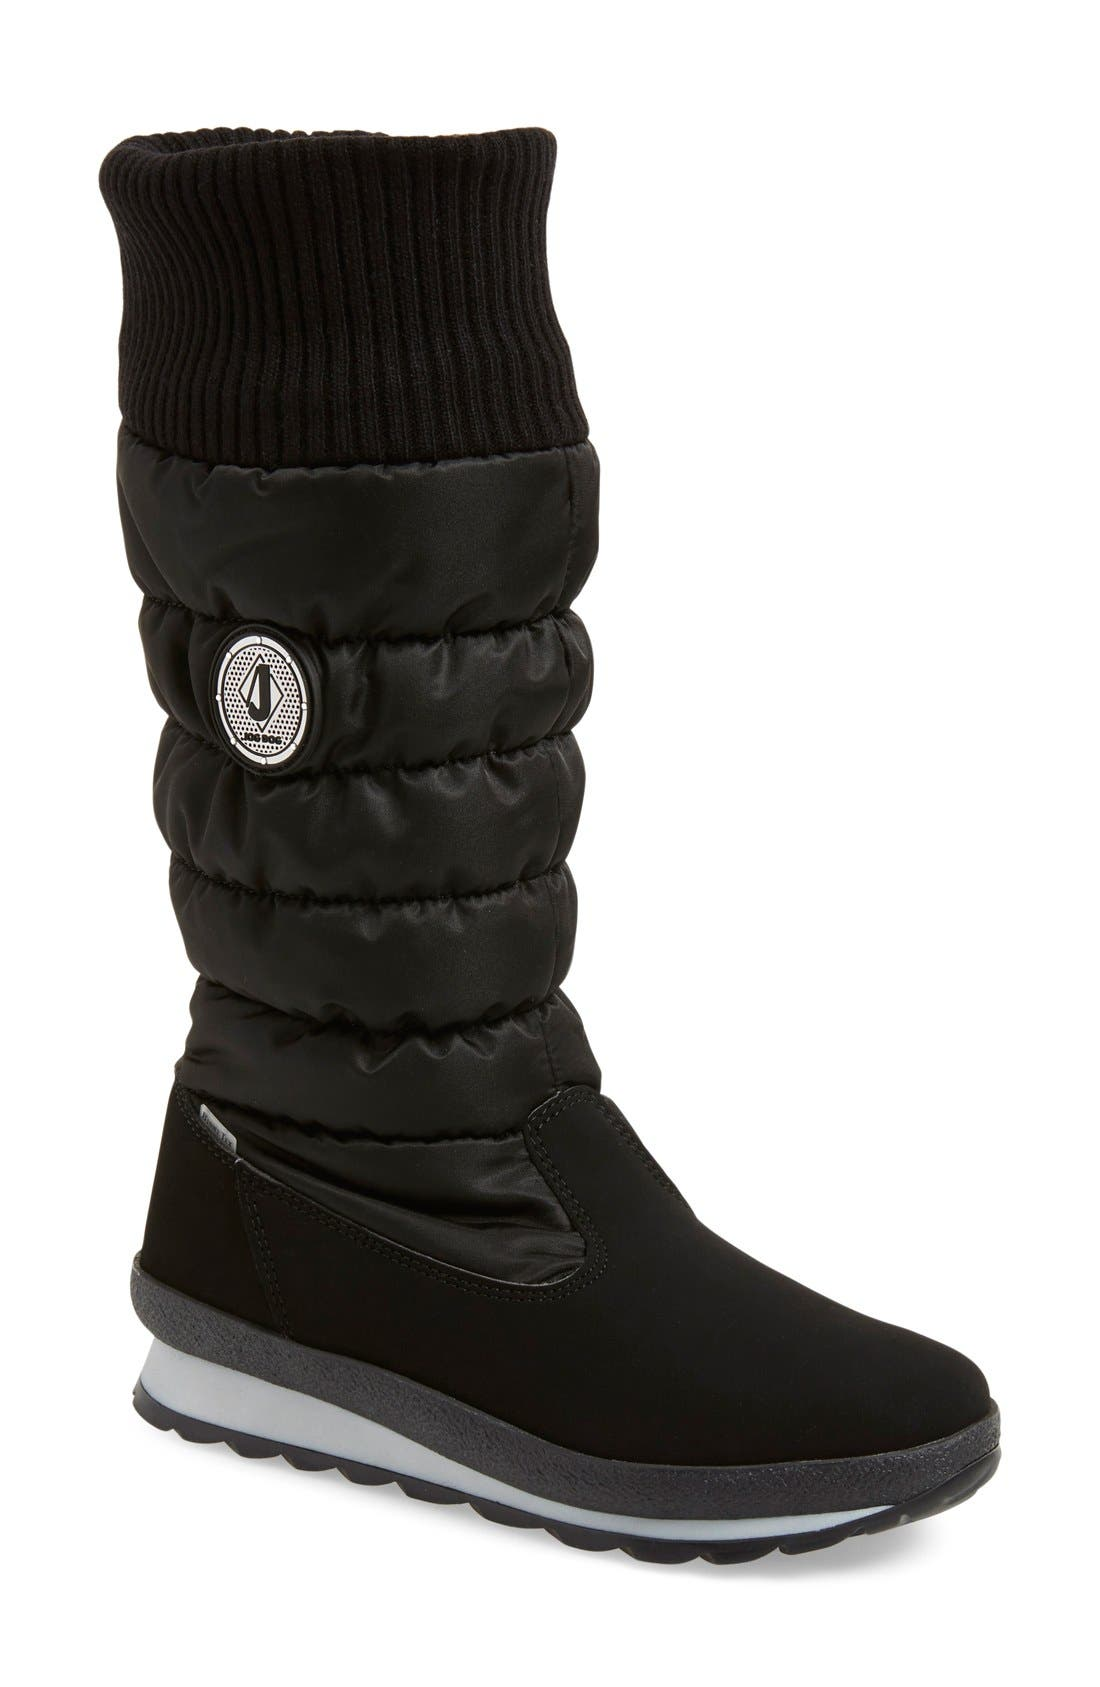 St. Anton Waterproof Winter Boot,                             Main thumbnail 1, color,                             Black